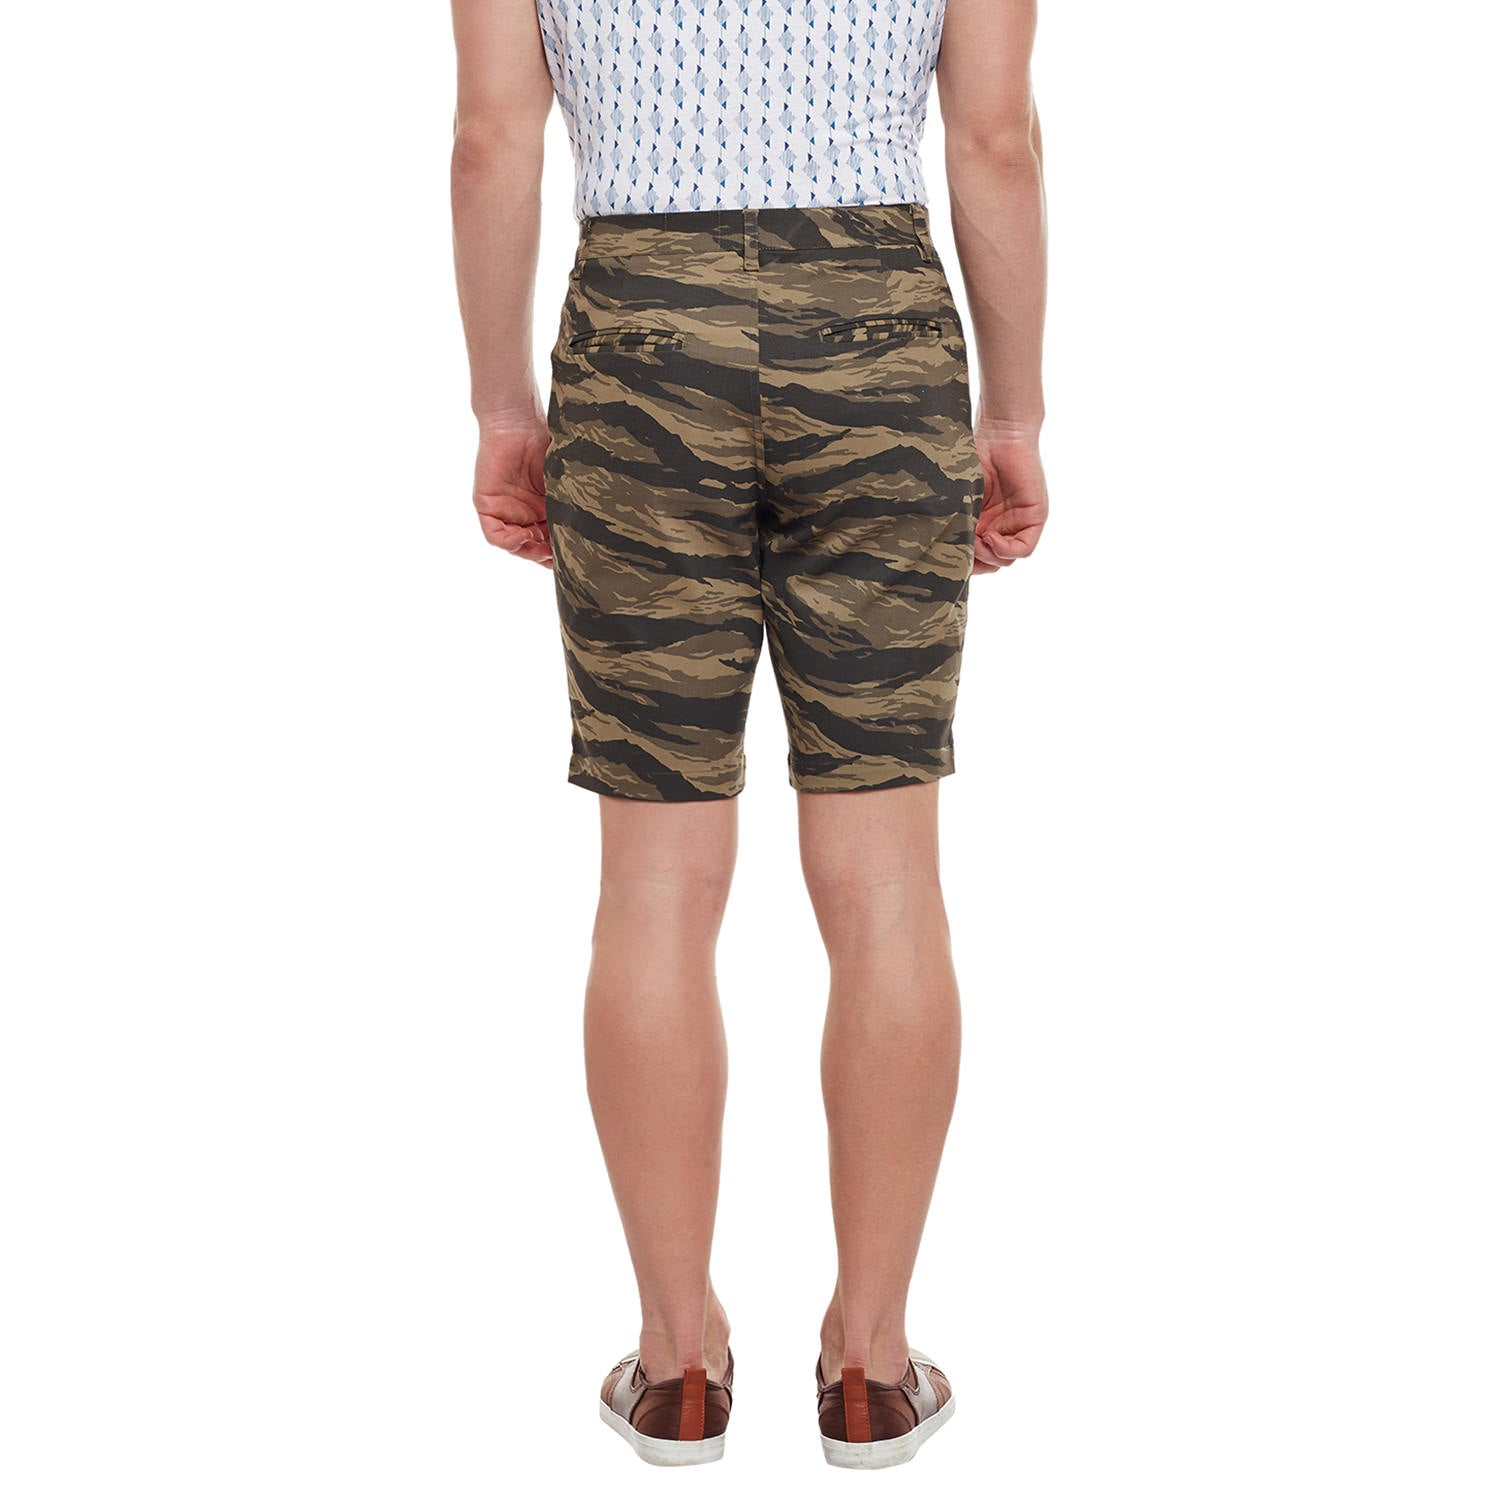 Atorse Mens Olive Green Camo Printed Woven Cotton Shorts